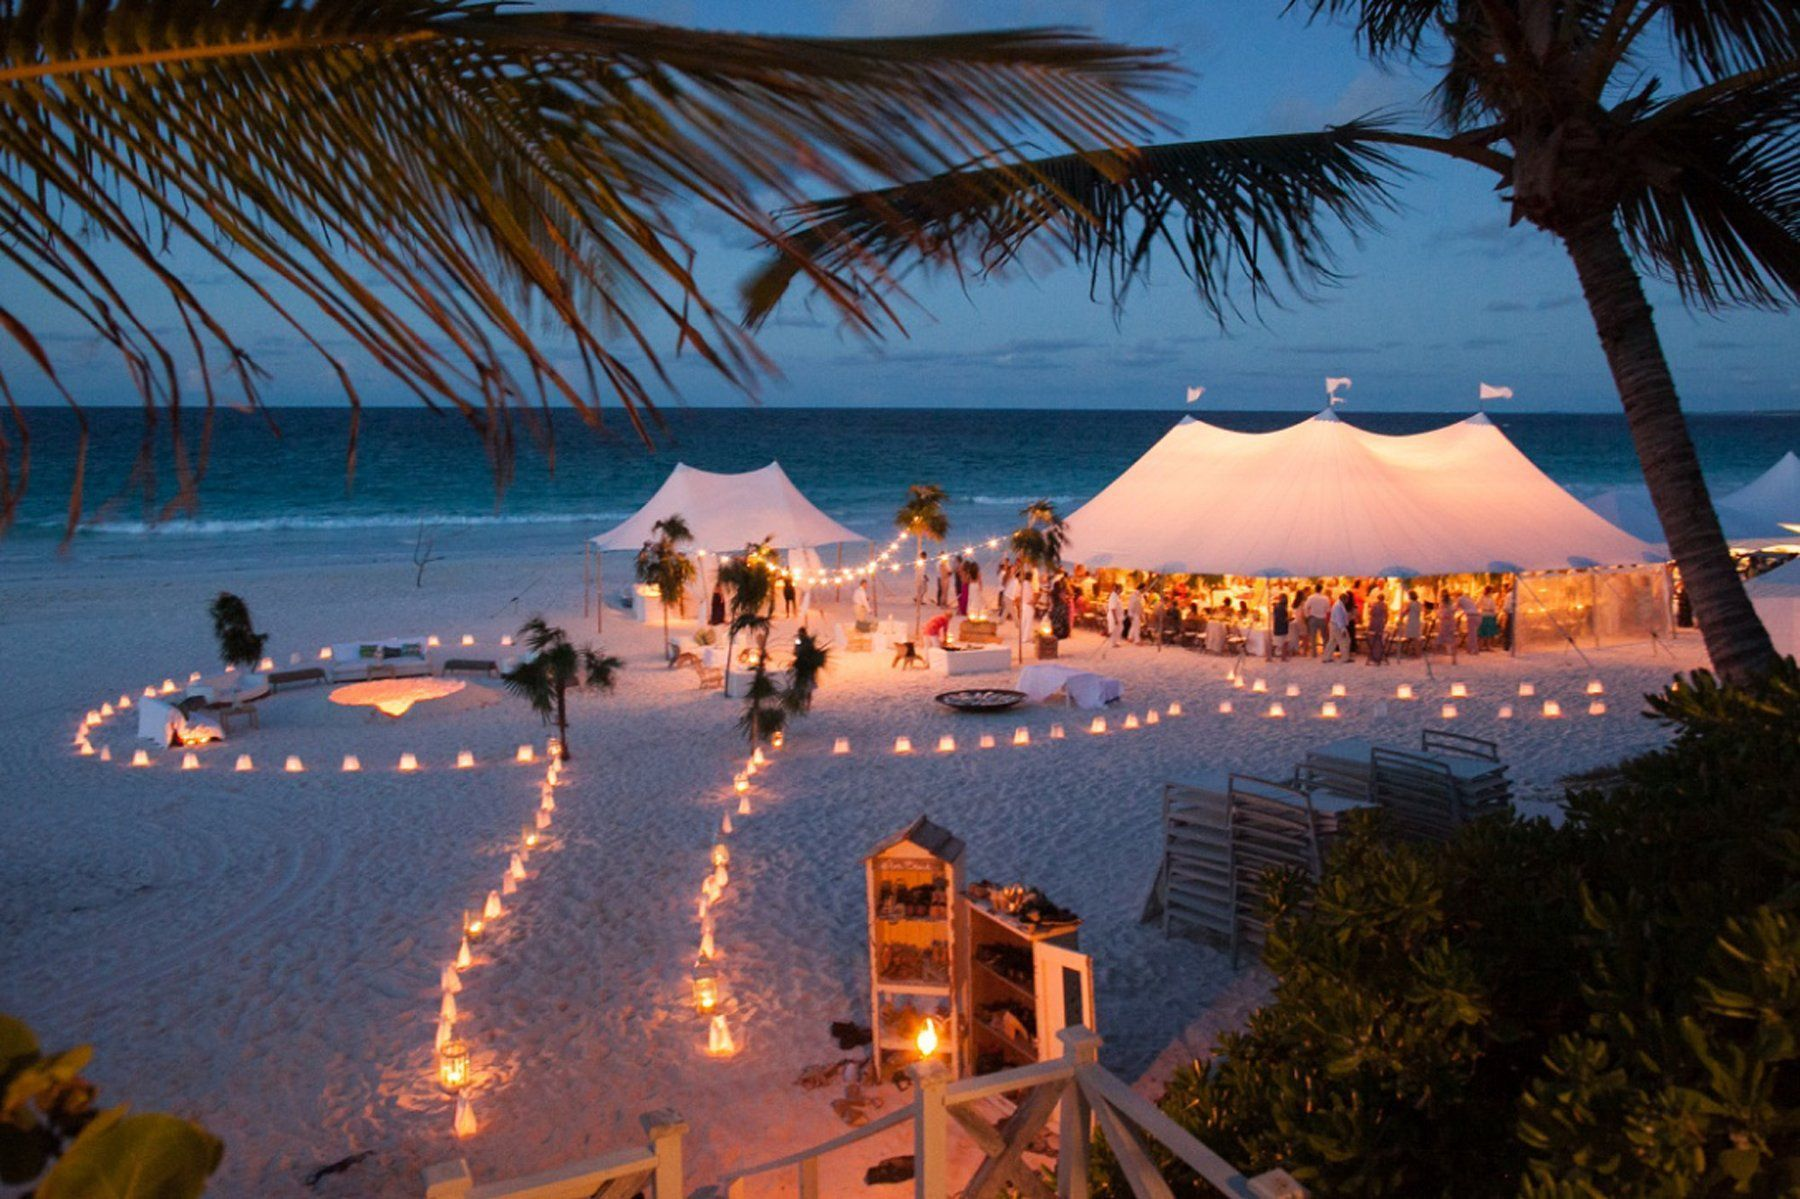 Beautiful Beach Wedding Destinationweddingideas Simple Beach Wedding Beautiful Beach Wedding Beach Wedding Reception